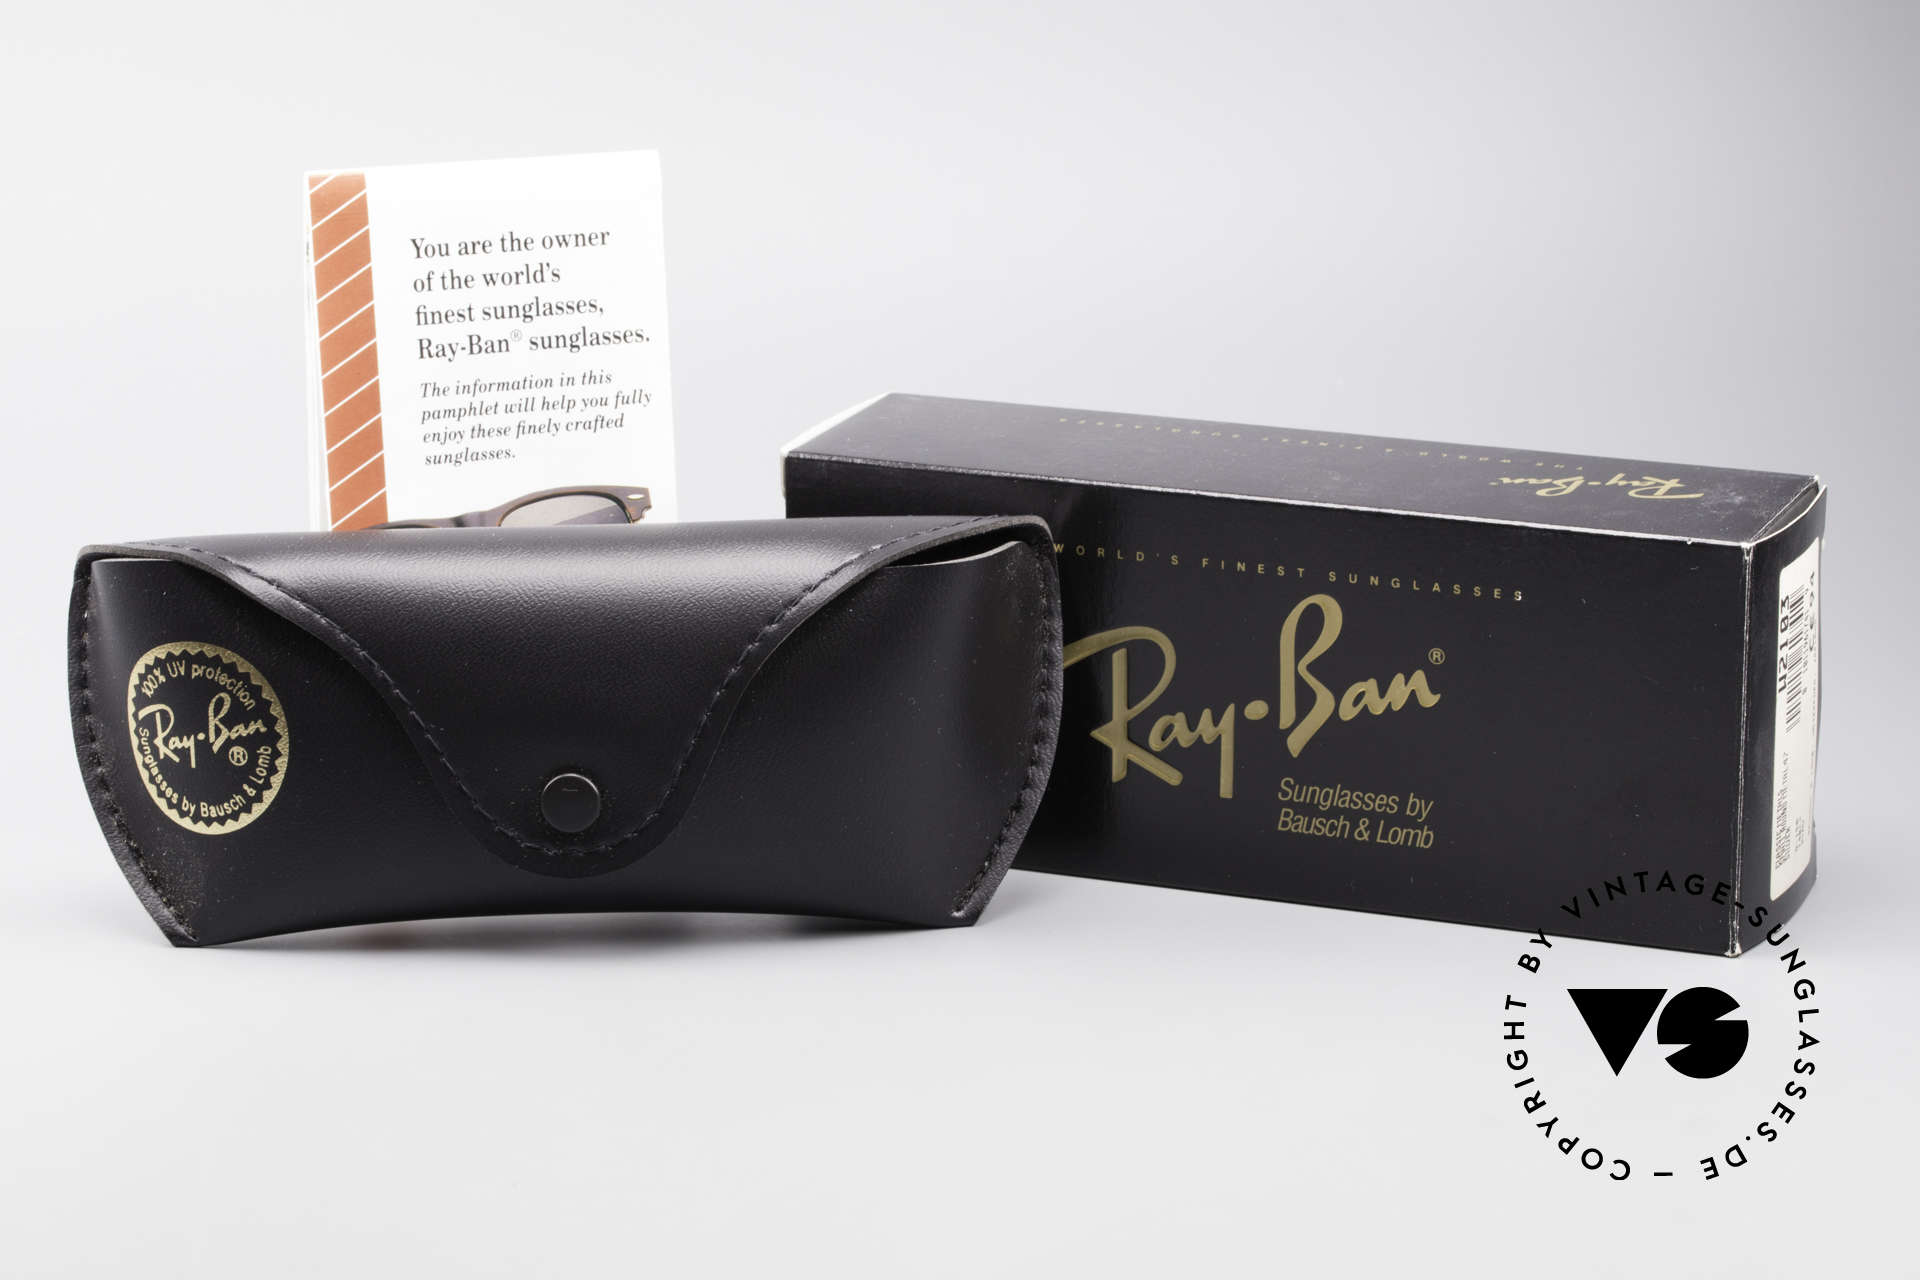 Ray Ban Wayfarer I Limited Edition USA Original, Size: medium, Made for Men and Women